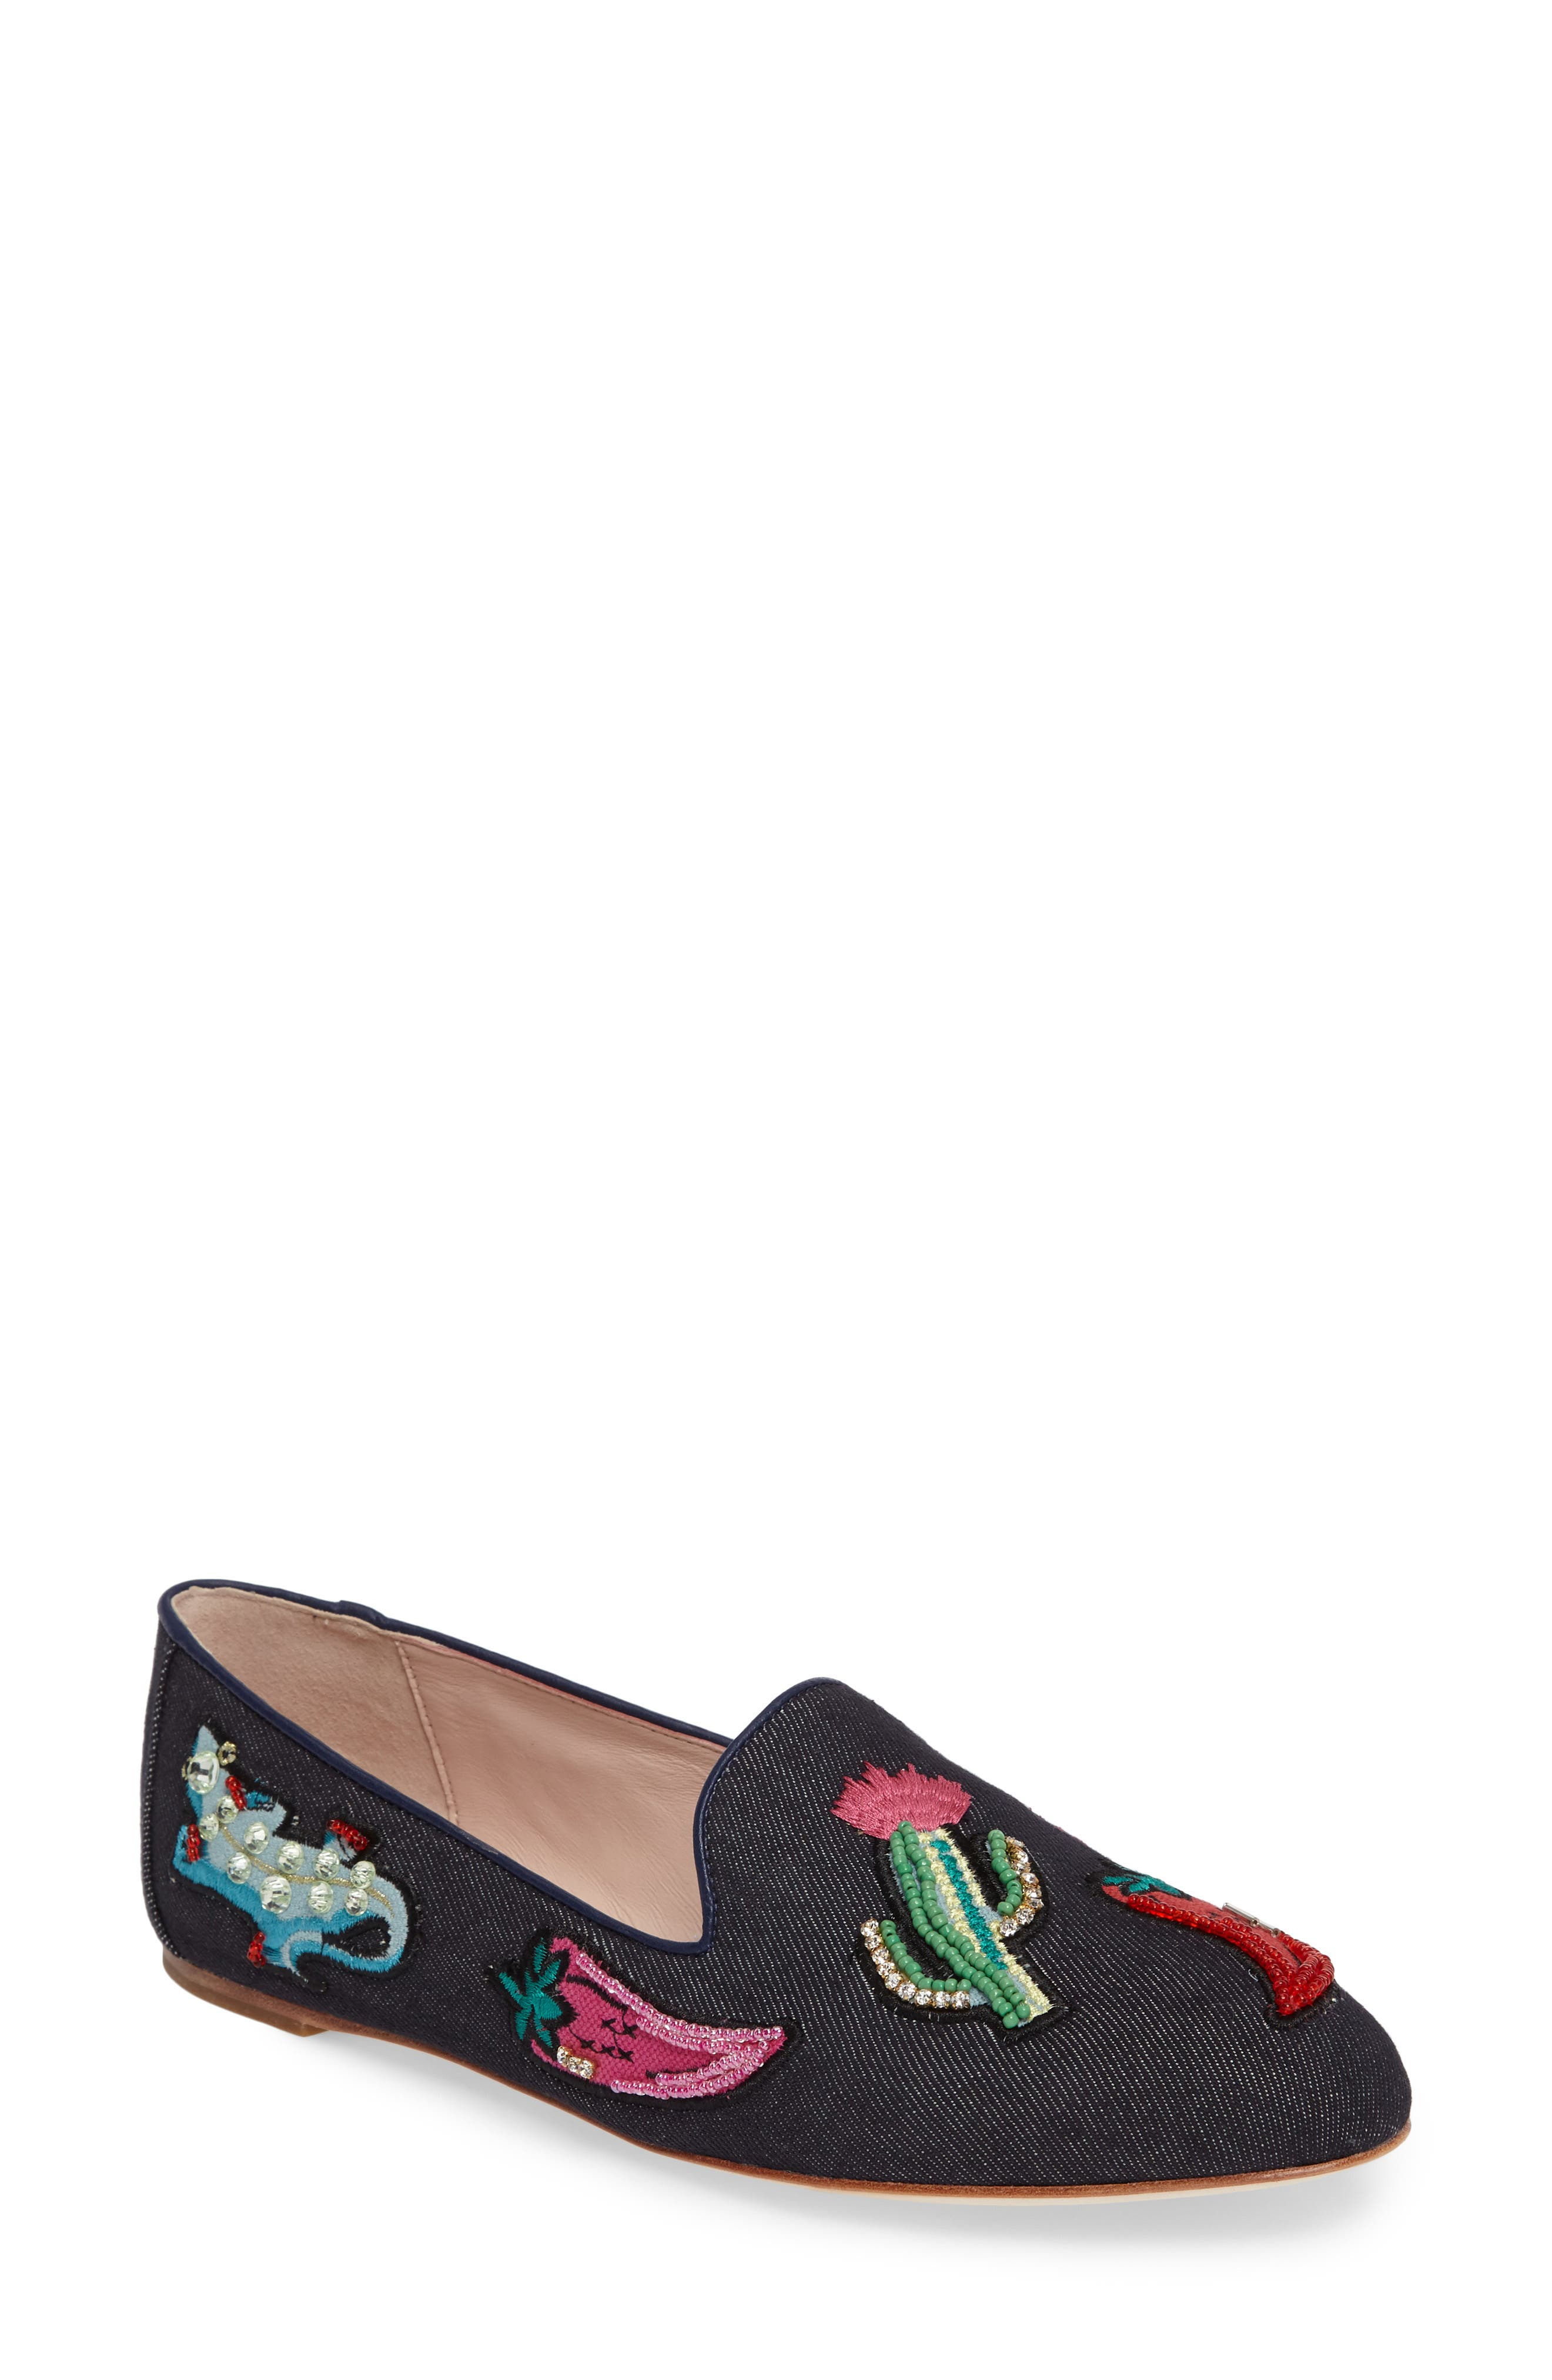 saville embroidered loafer,                         Main,                         color, 489